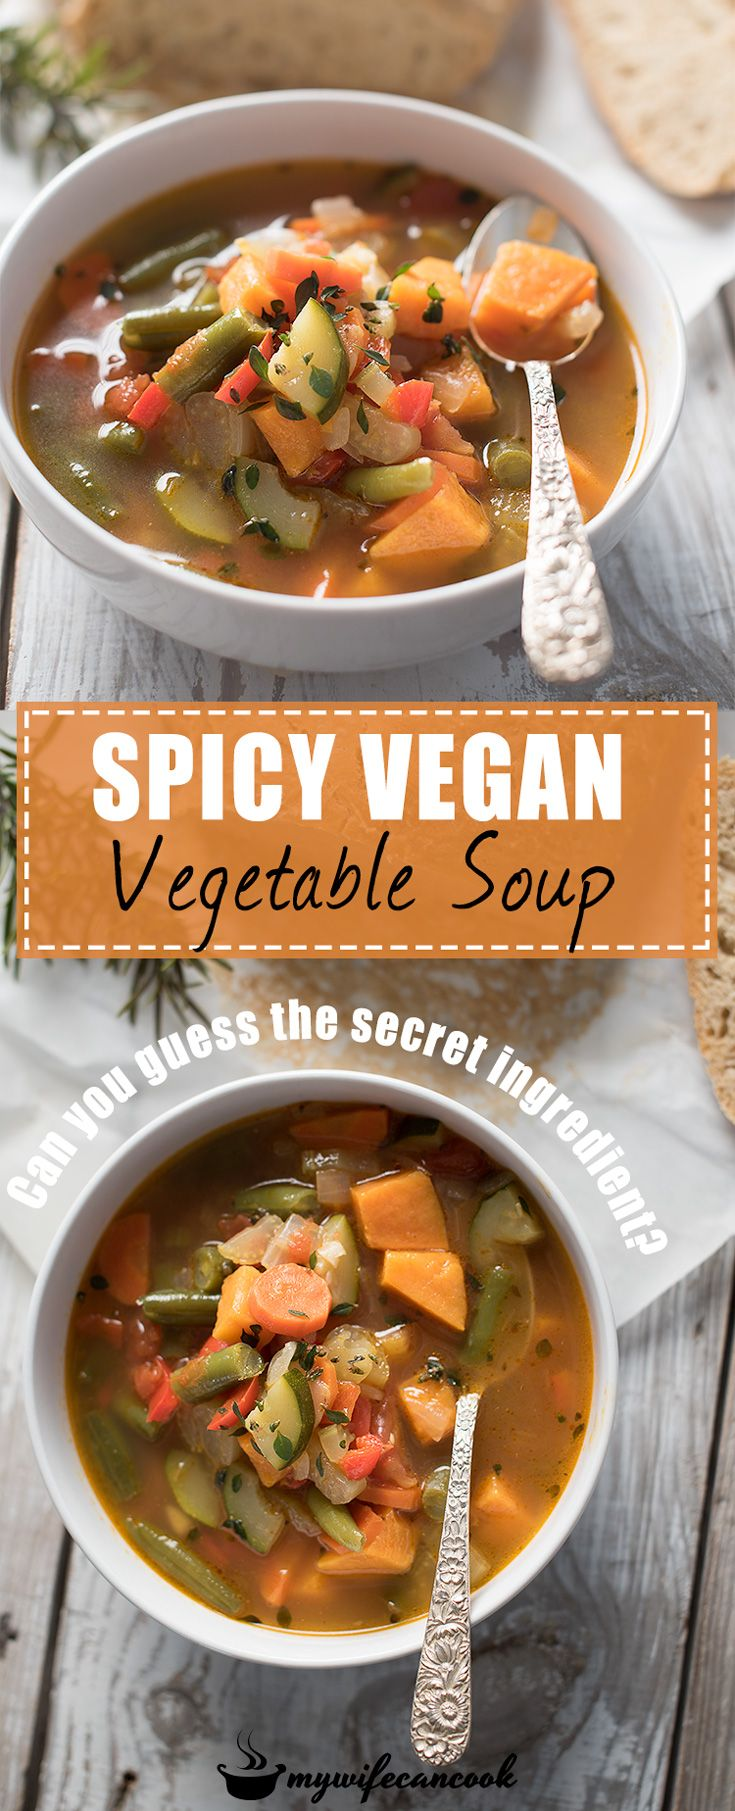 This easy vegan spicy vegetable soup packs a special spicy kick thanks to a secret ingredient. It's a great vegetable soup & a great way to get your daily dose of veggies! Whenever we need to clean out the vegetable drawer in our frig this is always the soup recipe we pull out to use. And the secret ingredient(Any guesses?) is really what makes this a spicy vegetable soup regardless of what vegetables you have added. Need a hint? This recipe was adapted from Tilghman Island Soup, a MD…